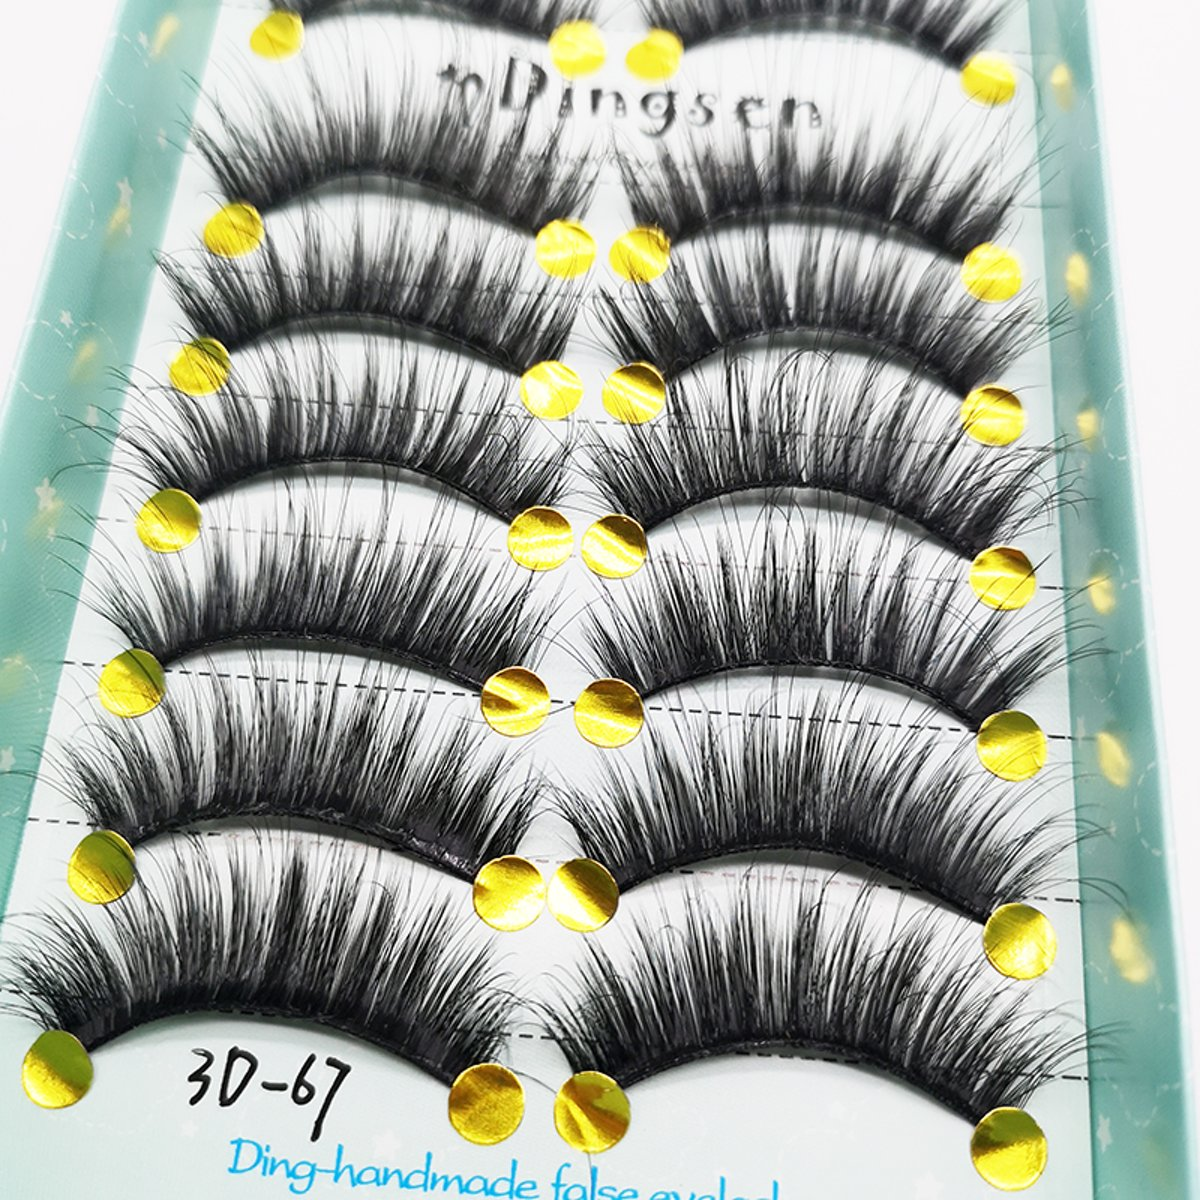 10 Paar Nepwimpers NO.1 Dik Straight | Wimpers | Cosmetica Accessoires